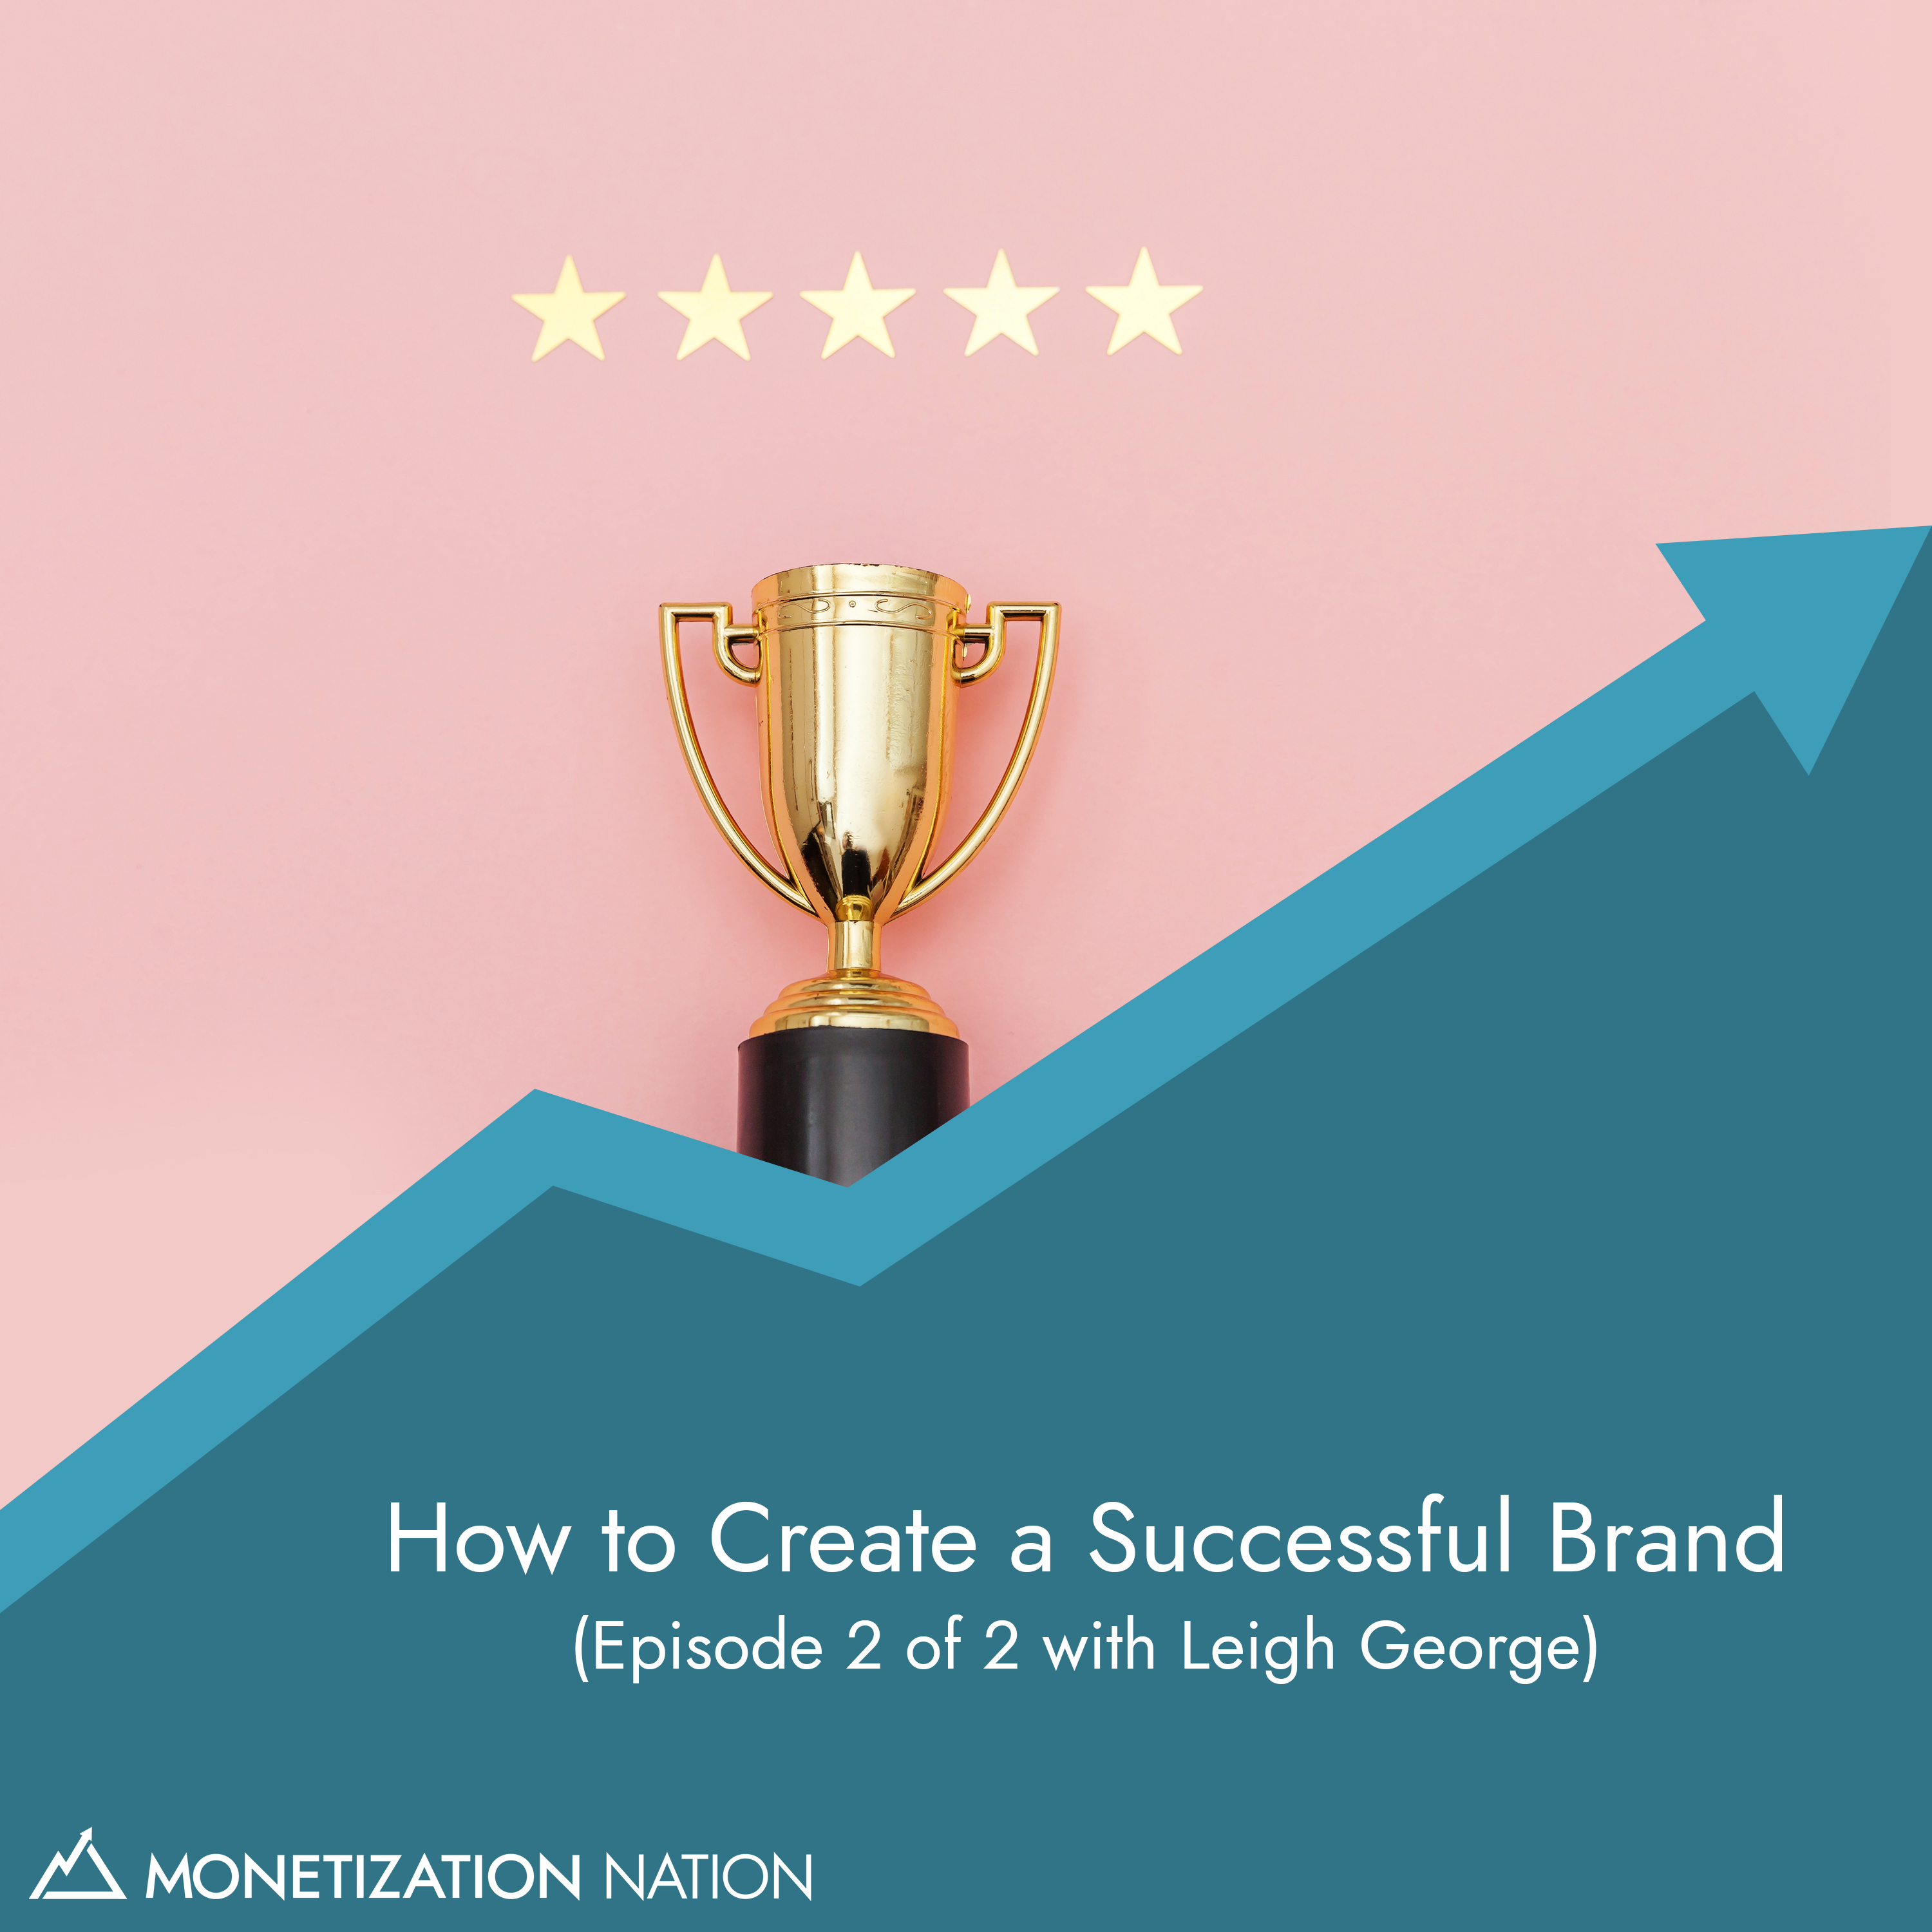 How to Create a Successful Brand